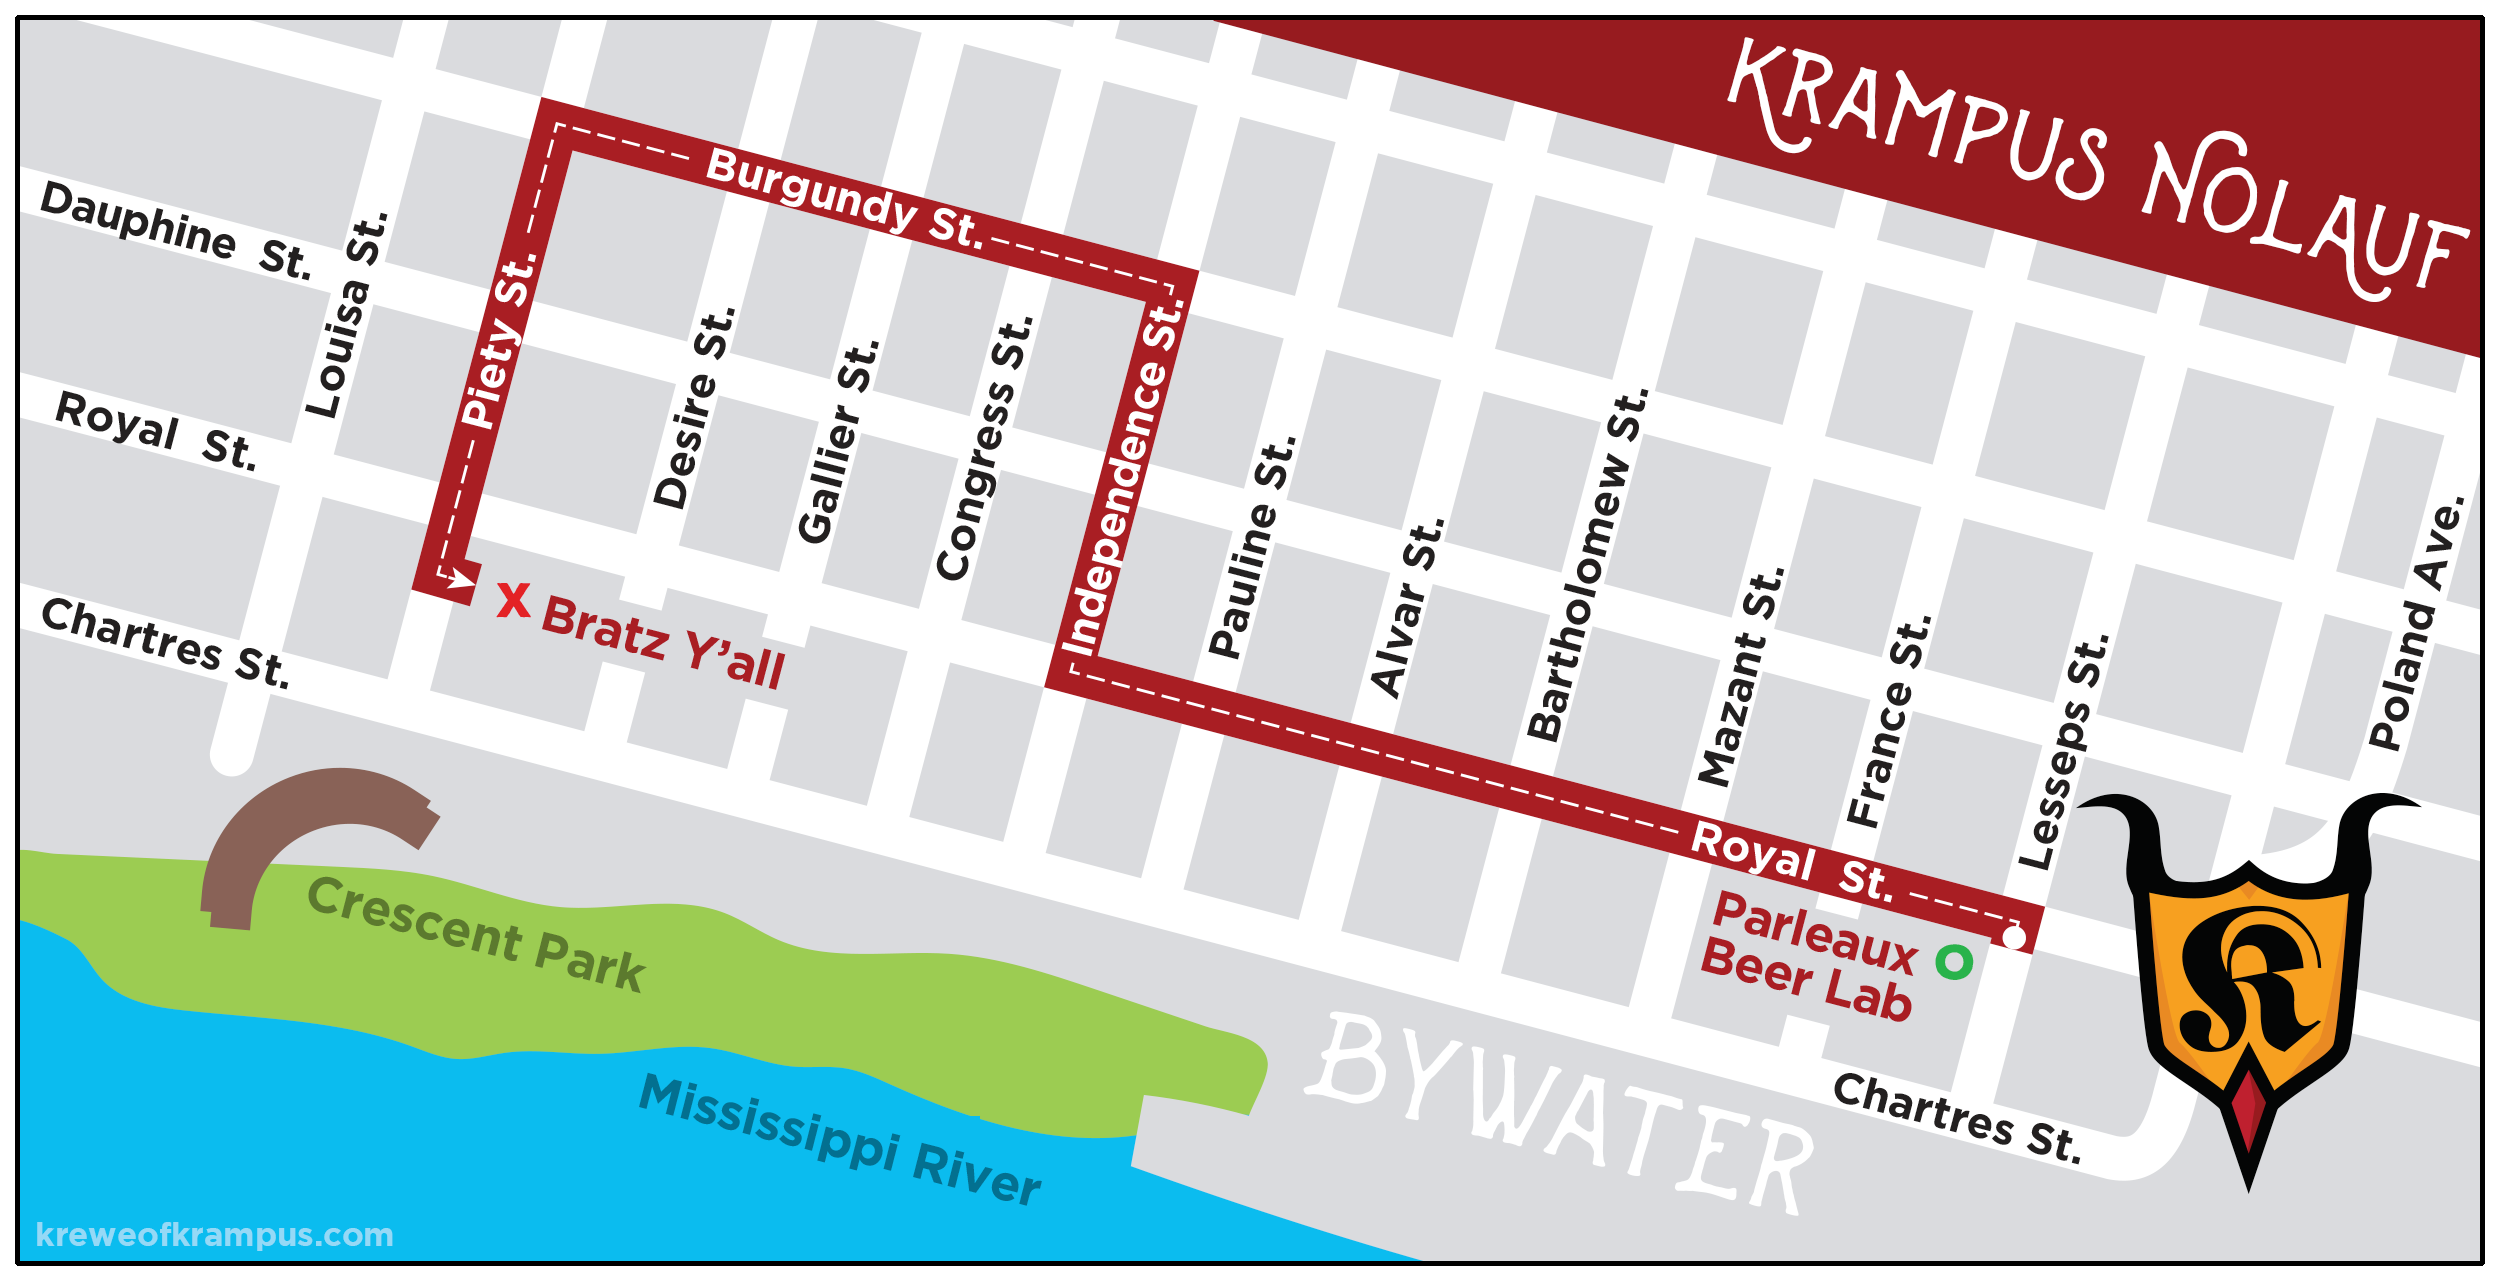 2018 Krampus NOLAuf Parade Route